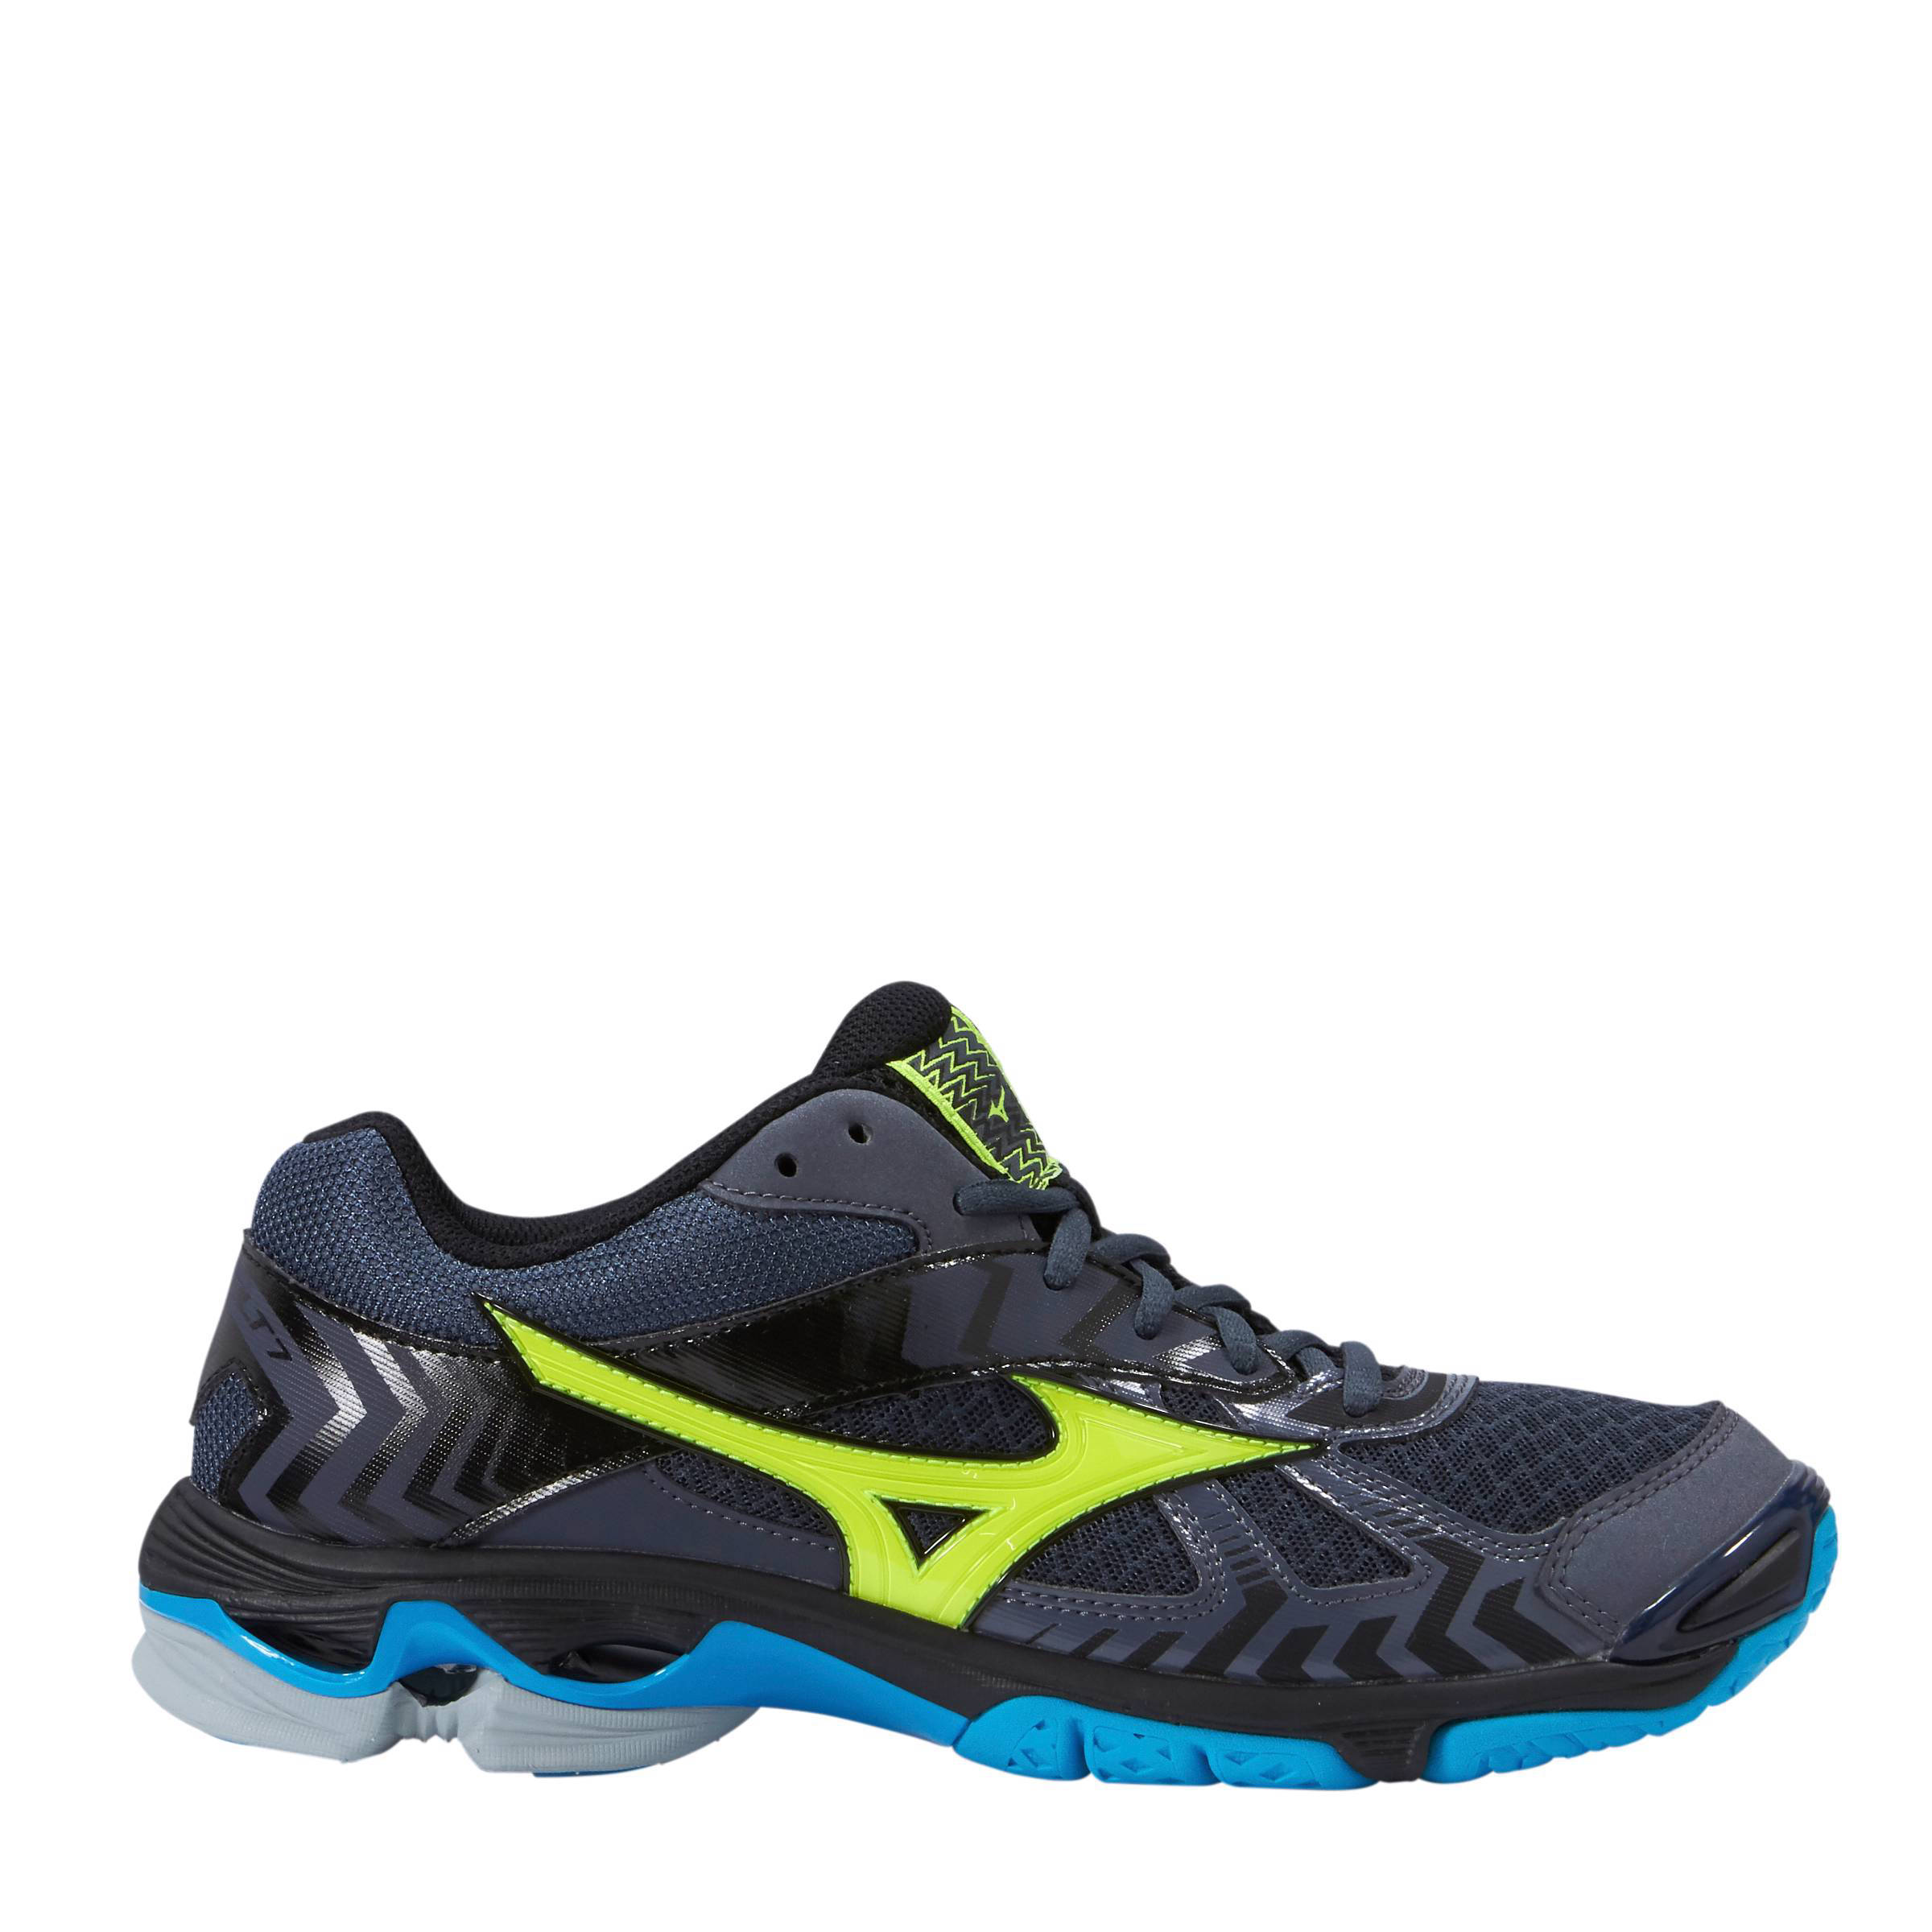 Wave Bolt Wehkamp Indoor 7 Sportschoenen 7nd1eiixqf Mizuno rtqrUH 13fd8fcd03